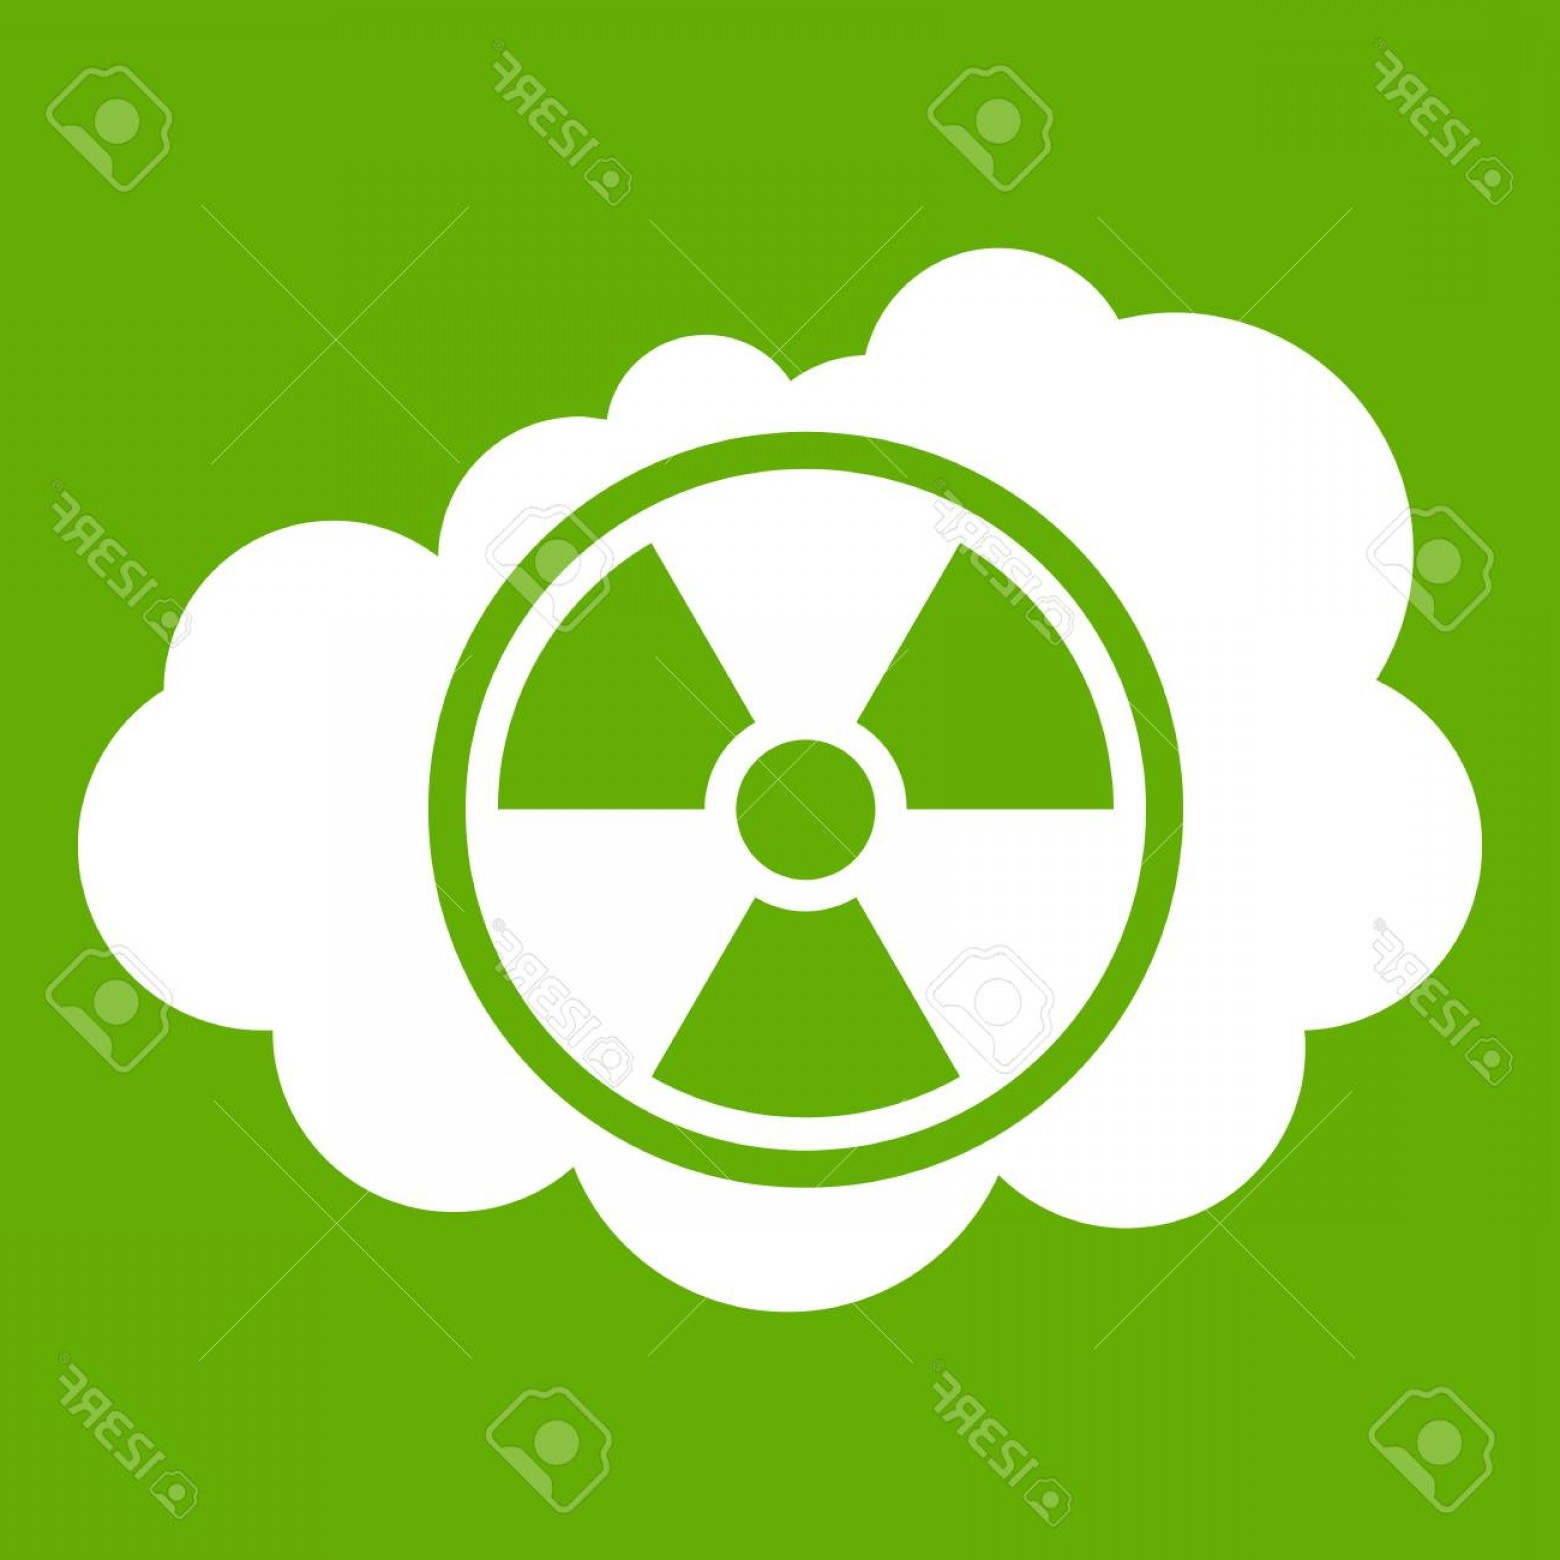 Radioactive Symbol Vector: Photostock Vector Cloud And Radioactive Sign Icon Green